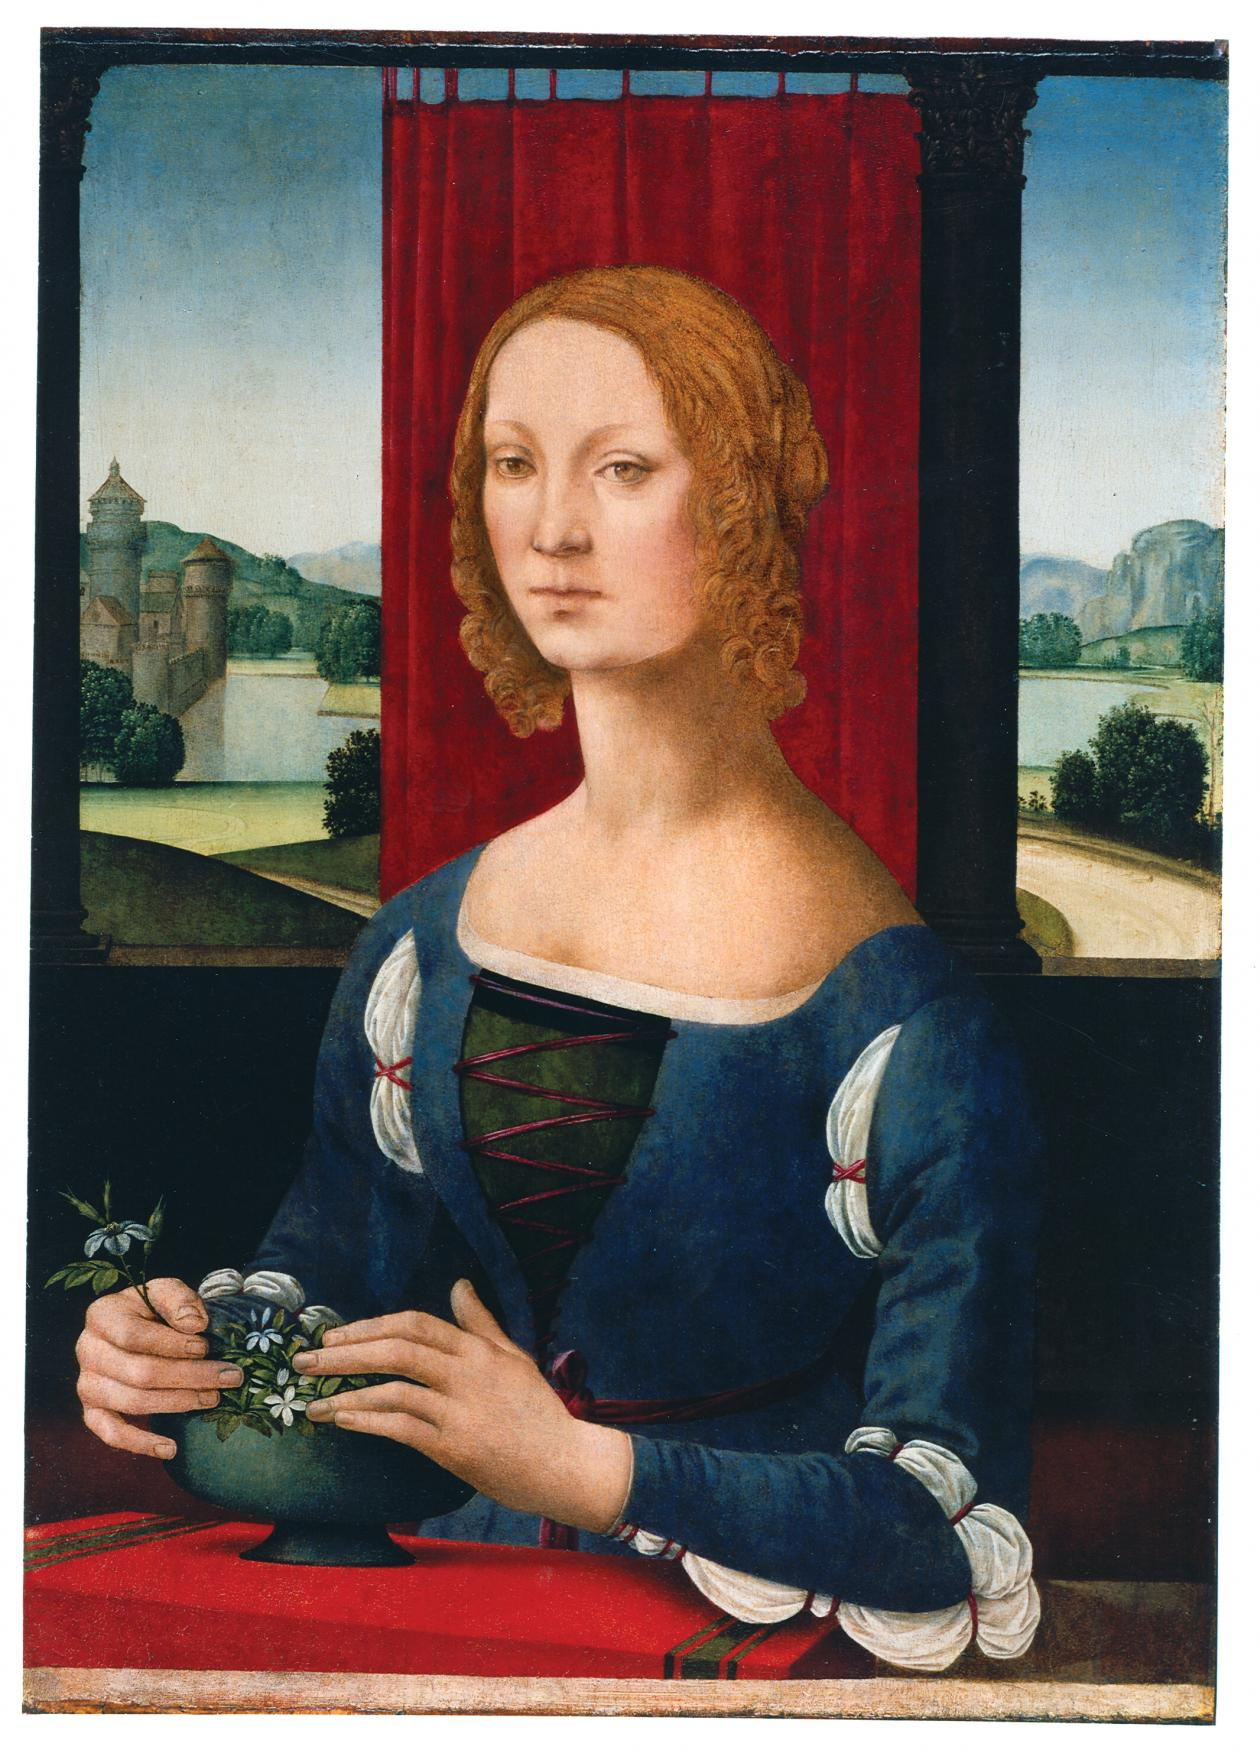 Painted Portrait of red haired woman with her hands in a bowl of flowers